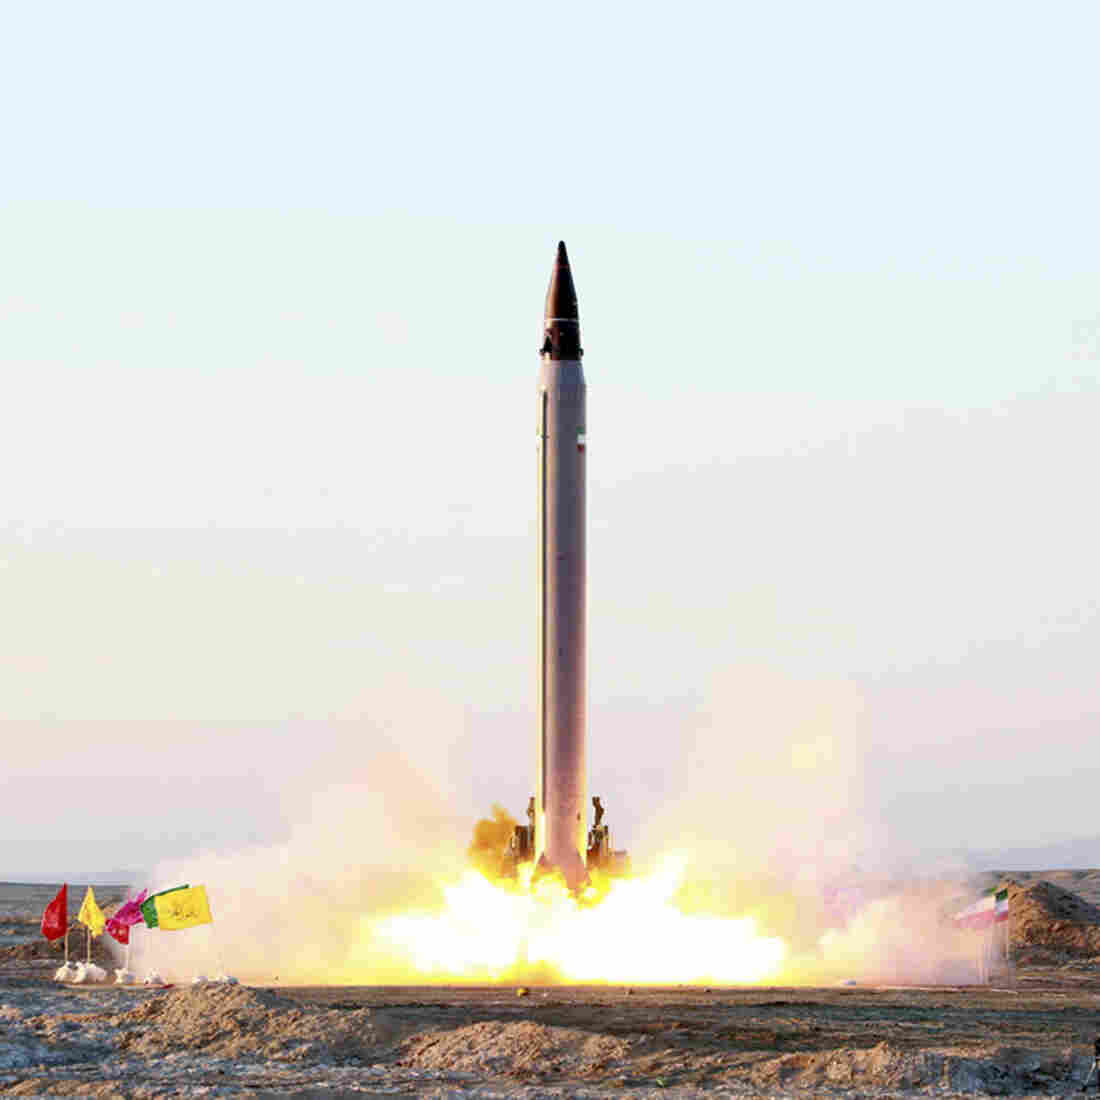 This picture, released by the official website of the Iranian Defense Ministry on Sunday, claims to show the launching of an Emad long-range ballistic surface-to-surface missile in an undisclosed location.